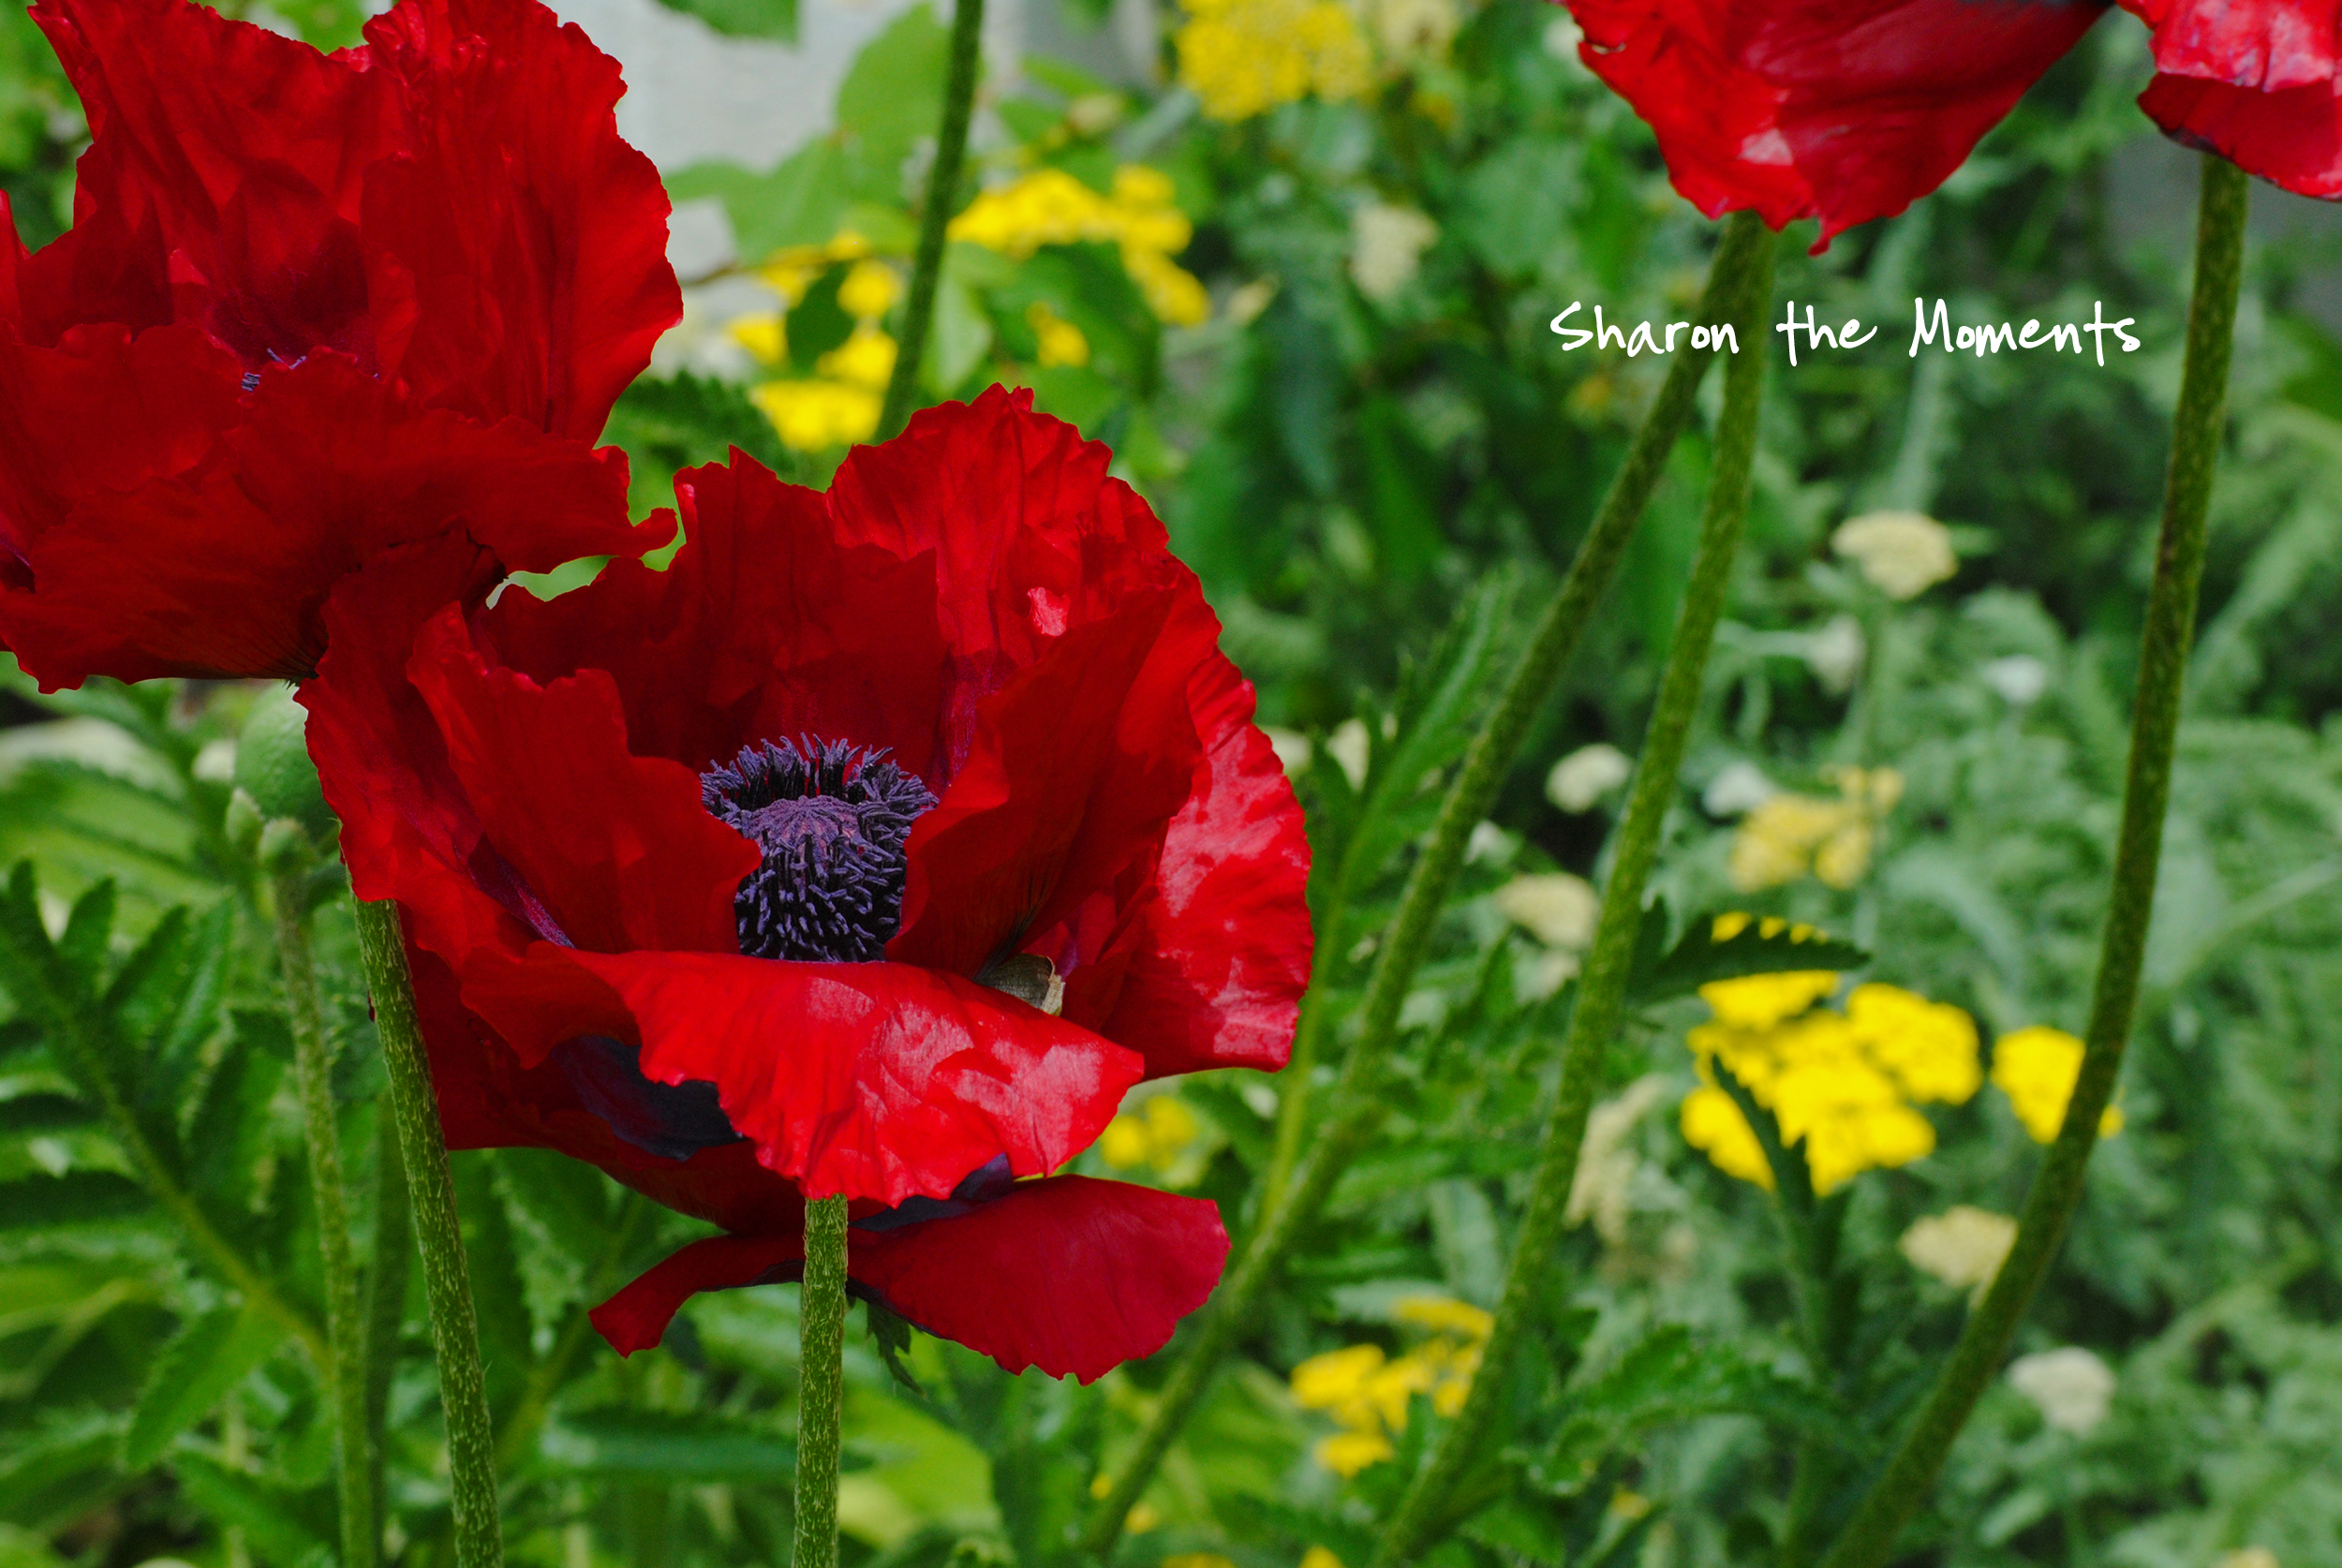 Favorite Photo Friday Eye Pleasing Red Poppies|Sharon the Moments blog